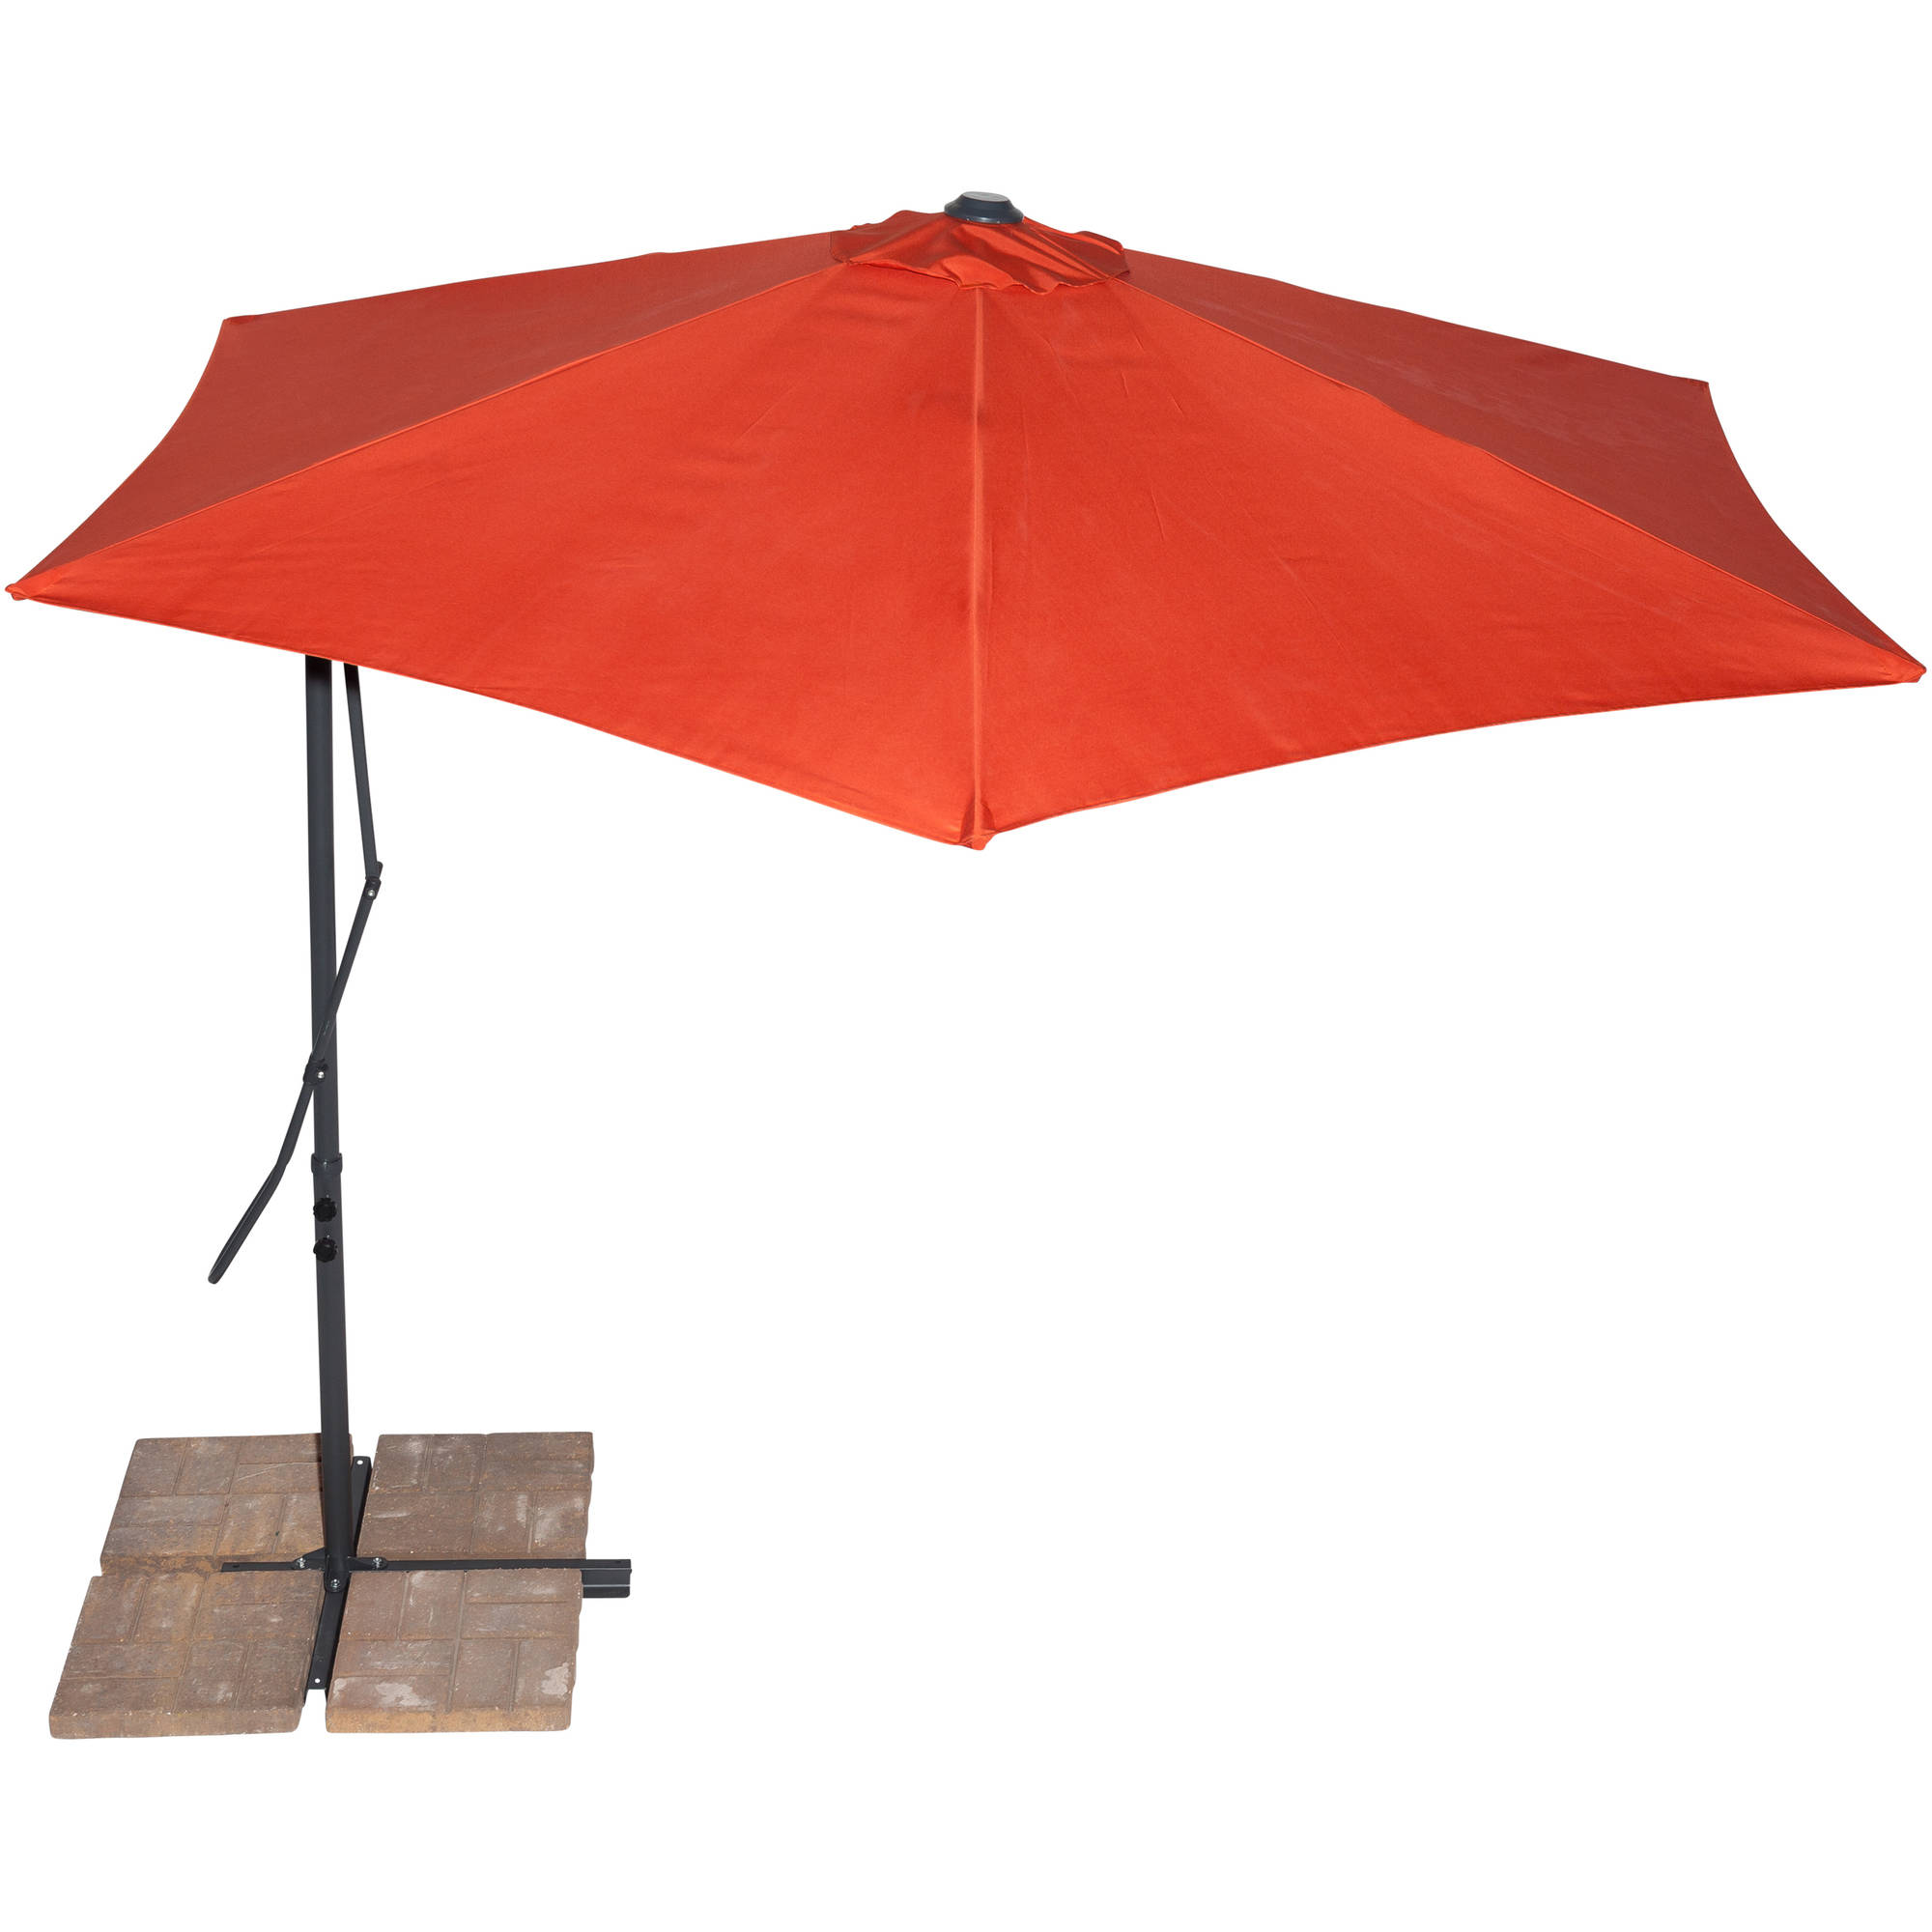 California Sun Shades 10' Cantilever Umbrella, Terracotta by Gale Pacific USA Inc